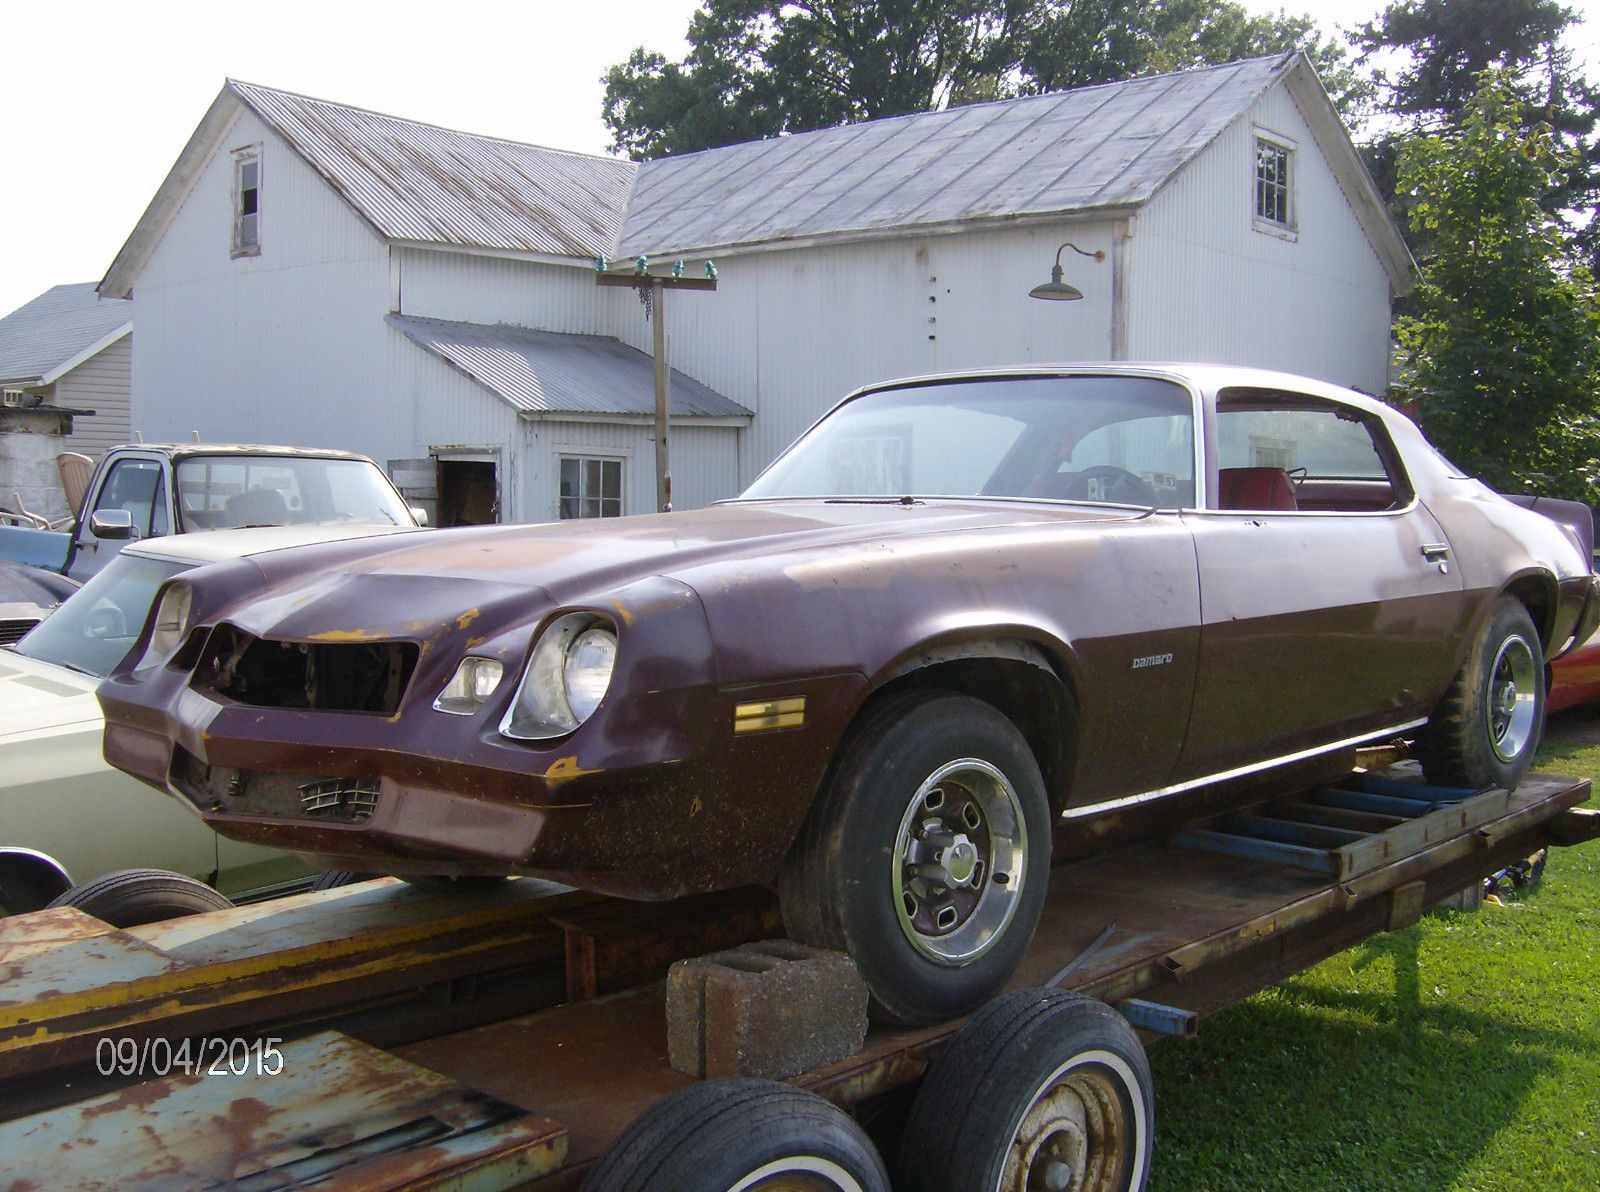 1981 chevrolet camaro sport coupe rolling project car for sale